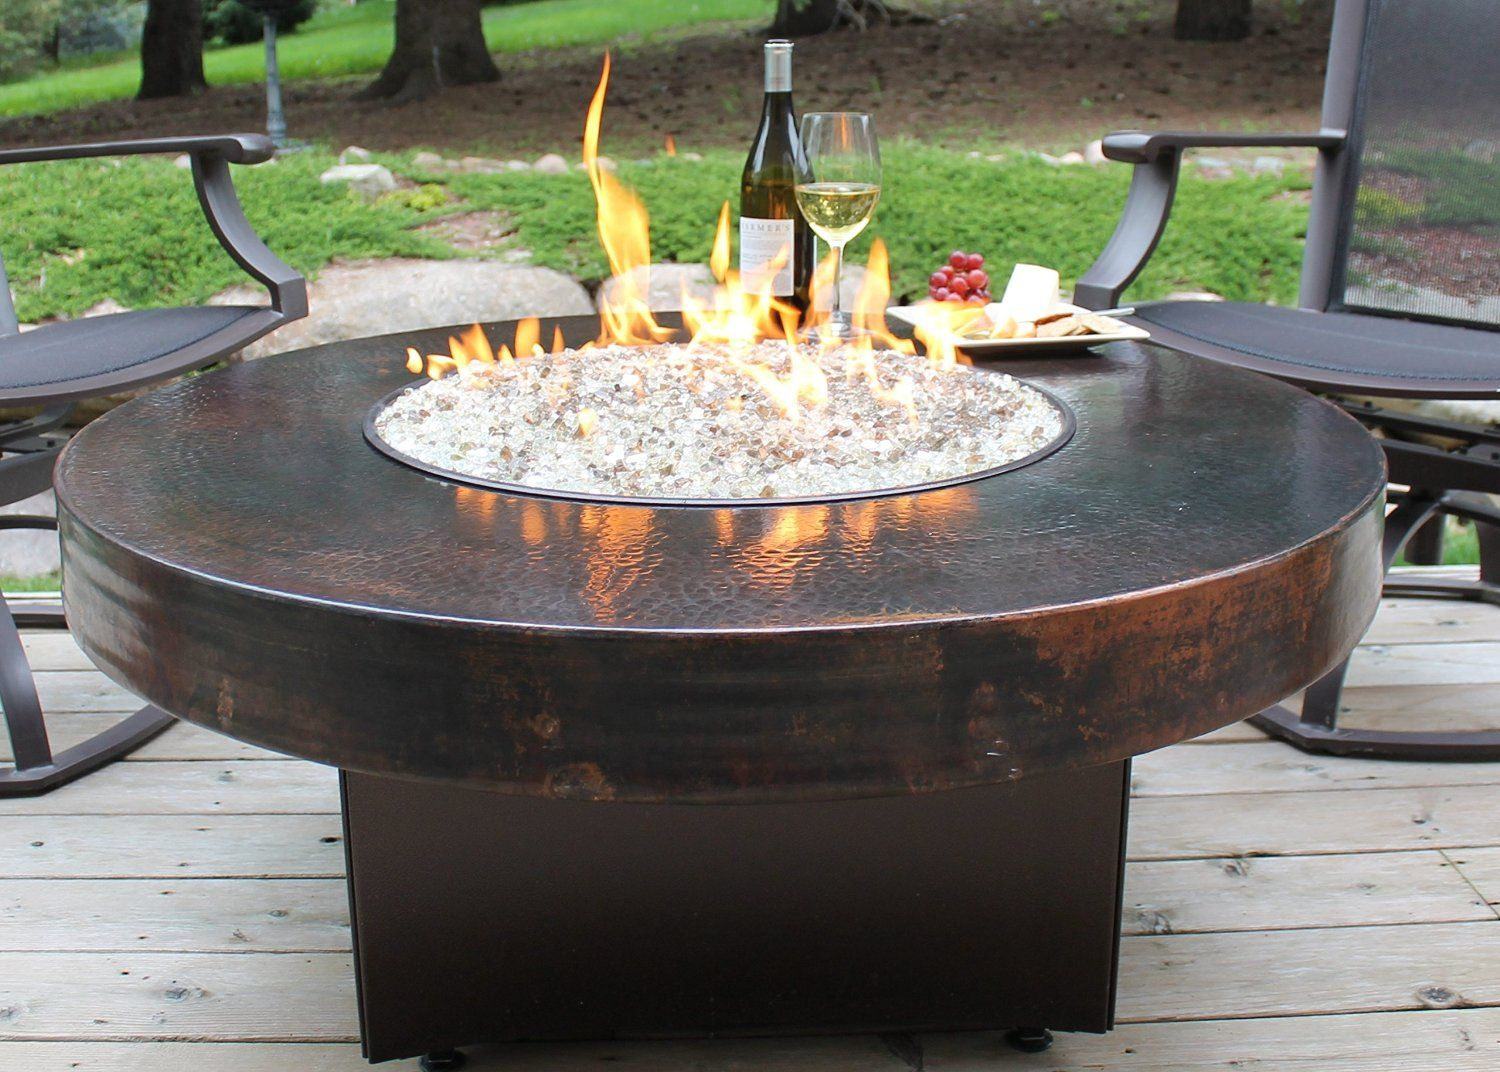 Hammered Copper 42 Round Oriflamme Fire Table Gas Fire Pit Table 19 In Height Standard Coffee Table Height Glass Fire Pit Fire Pit Glass Rocks Fire Pit Kit